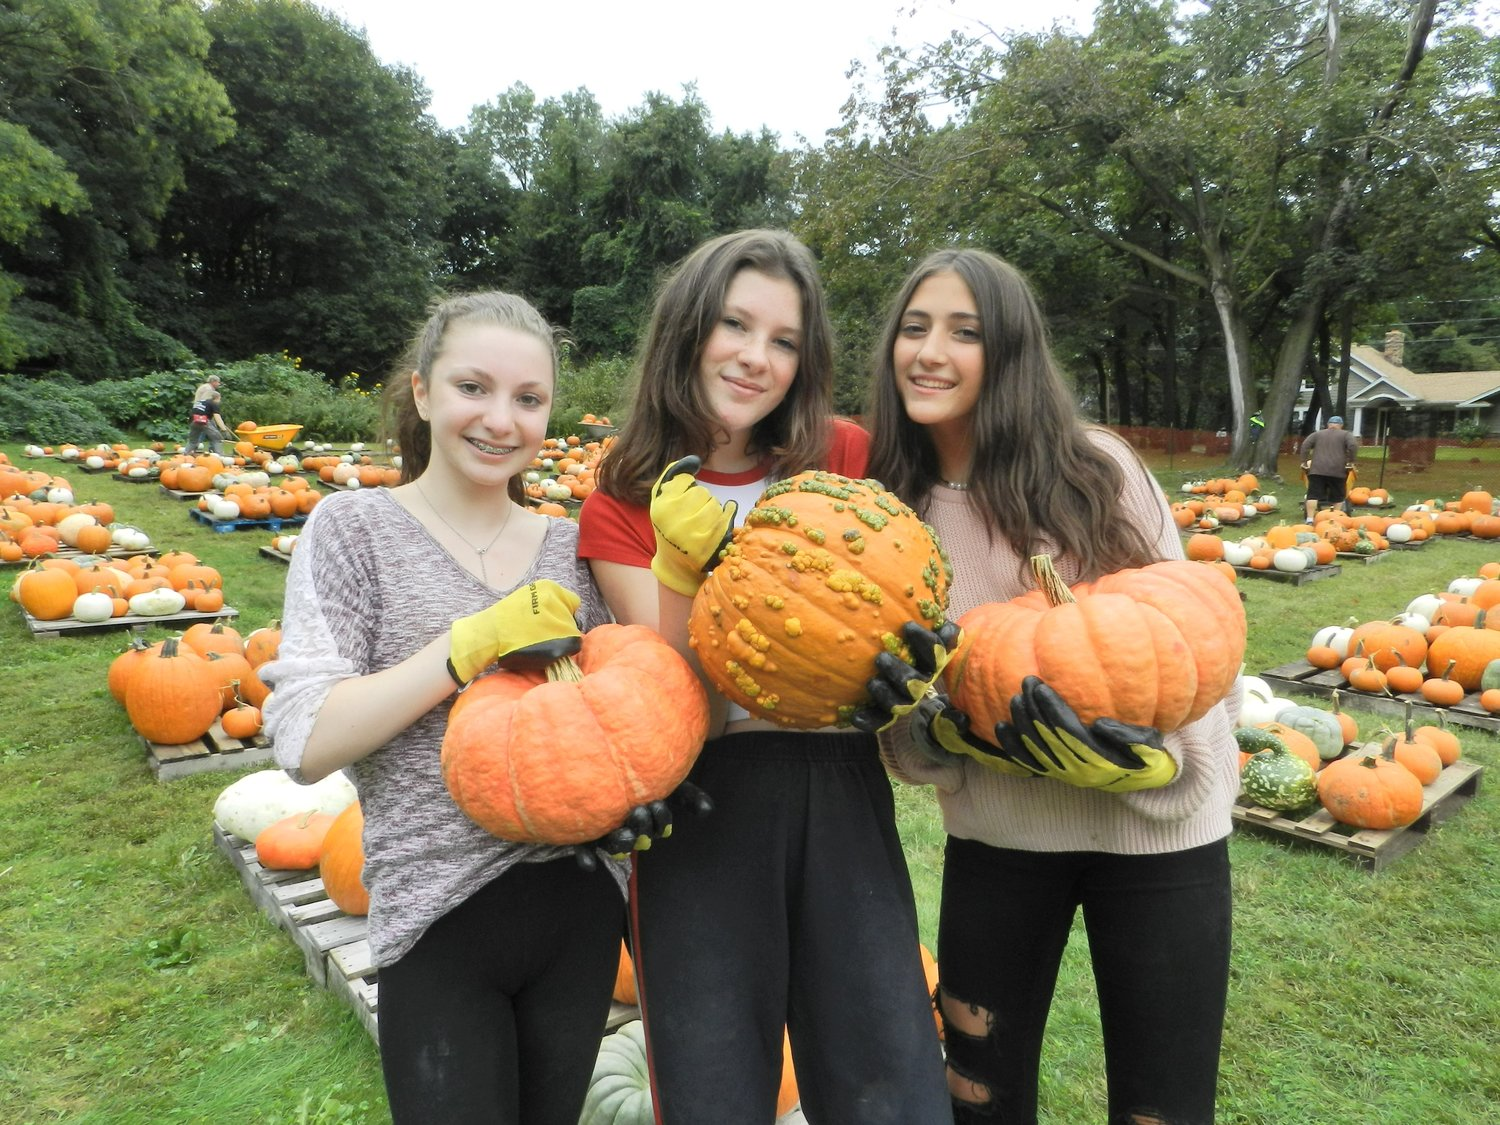 North Shore High School students Halle McGrath, left, Finley Livingston and Nora Schatz held up some heaping pumpkins, which weren't even the biggest of the bunch.